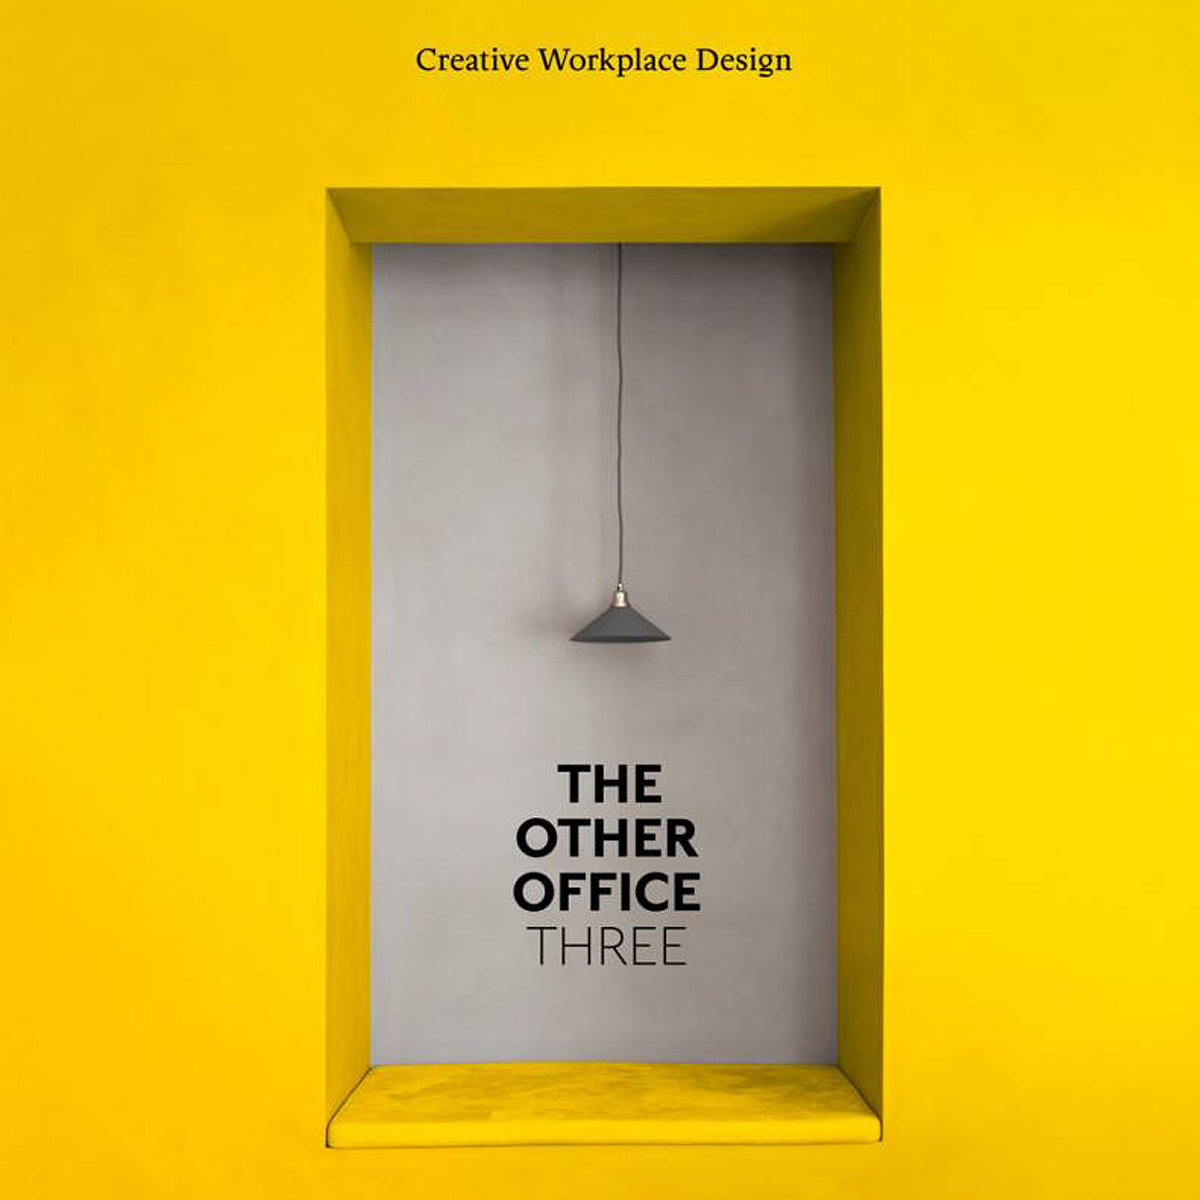 The Other Office 3 - Creative Workplace Design